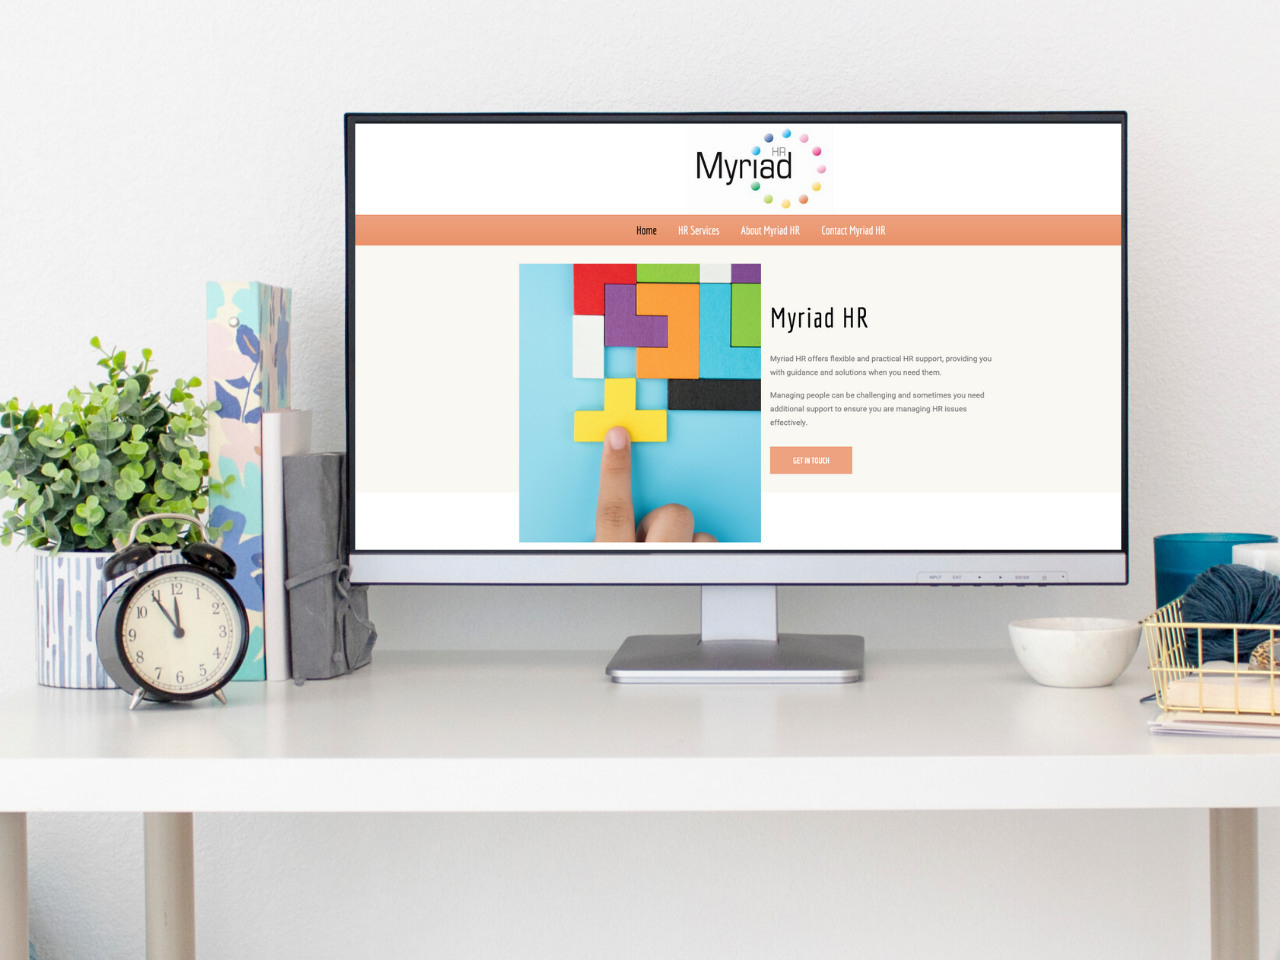 New website design for Myriad HR